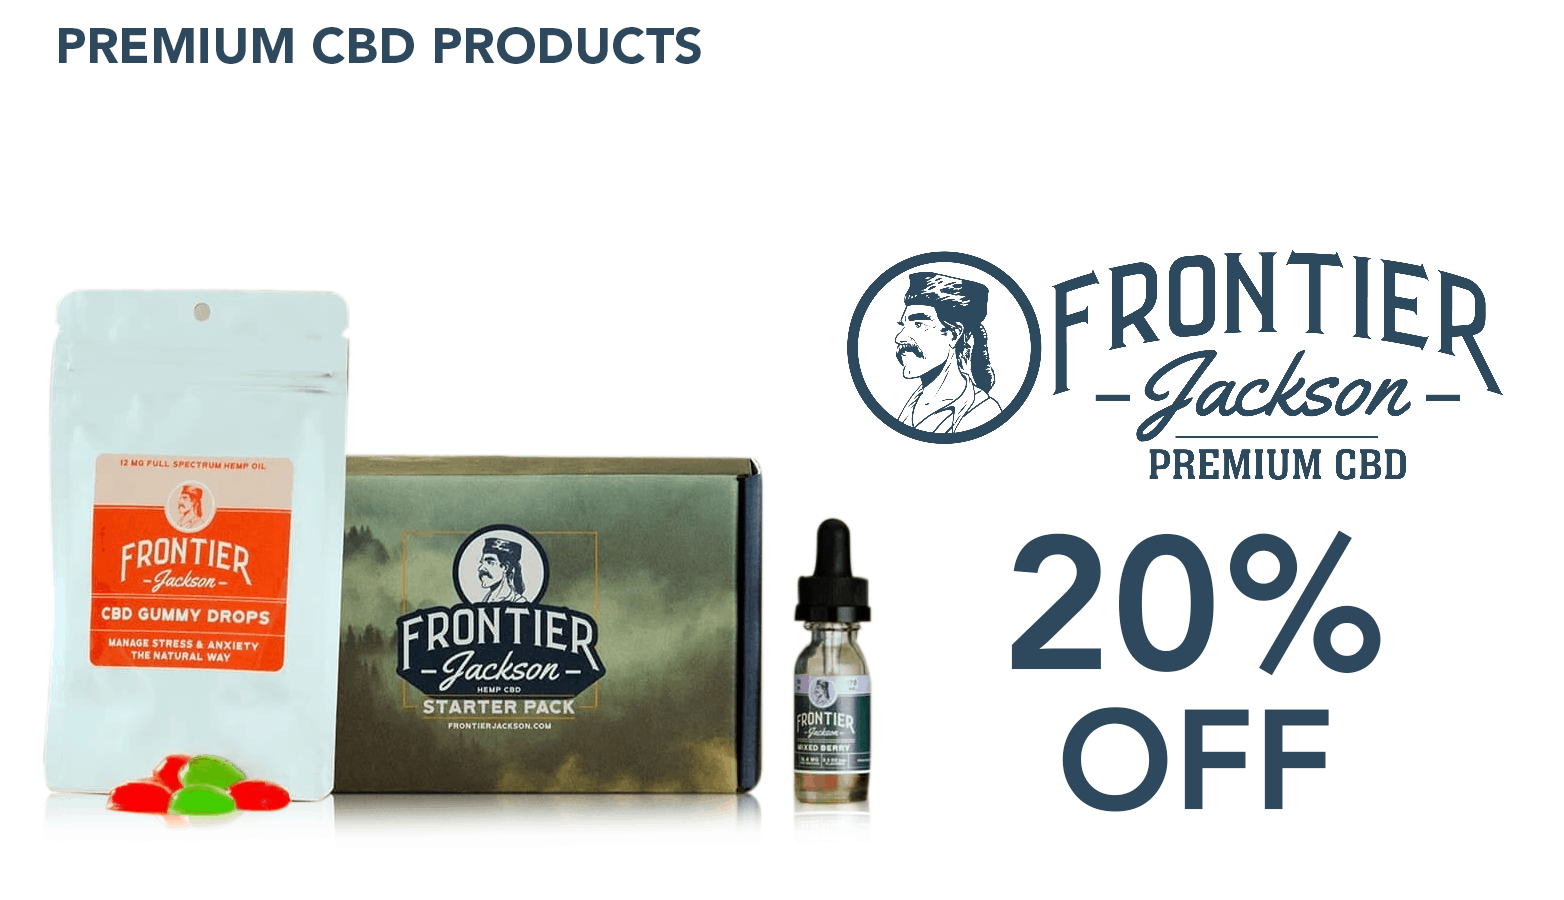 FrontierJackson.com CBD Coupon Code discounts promos save on cannabis online Website